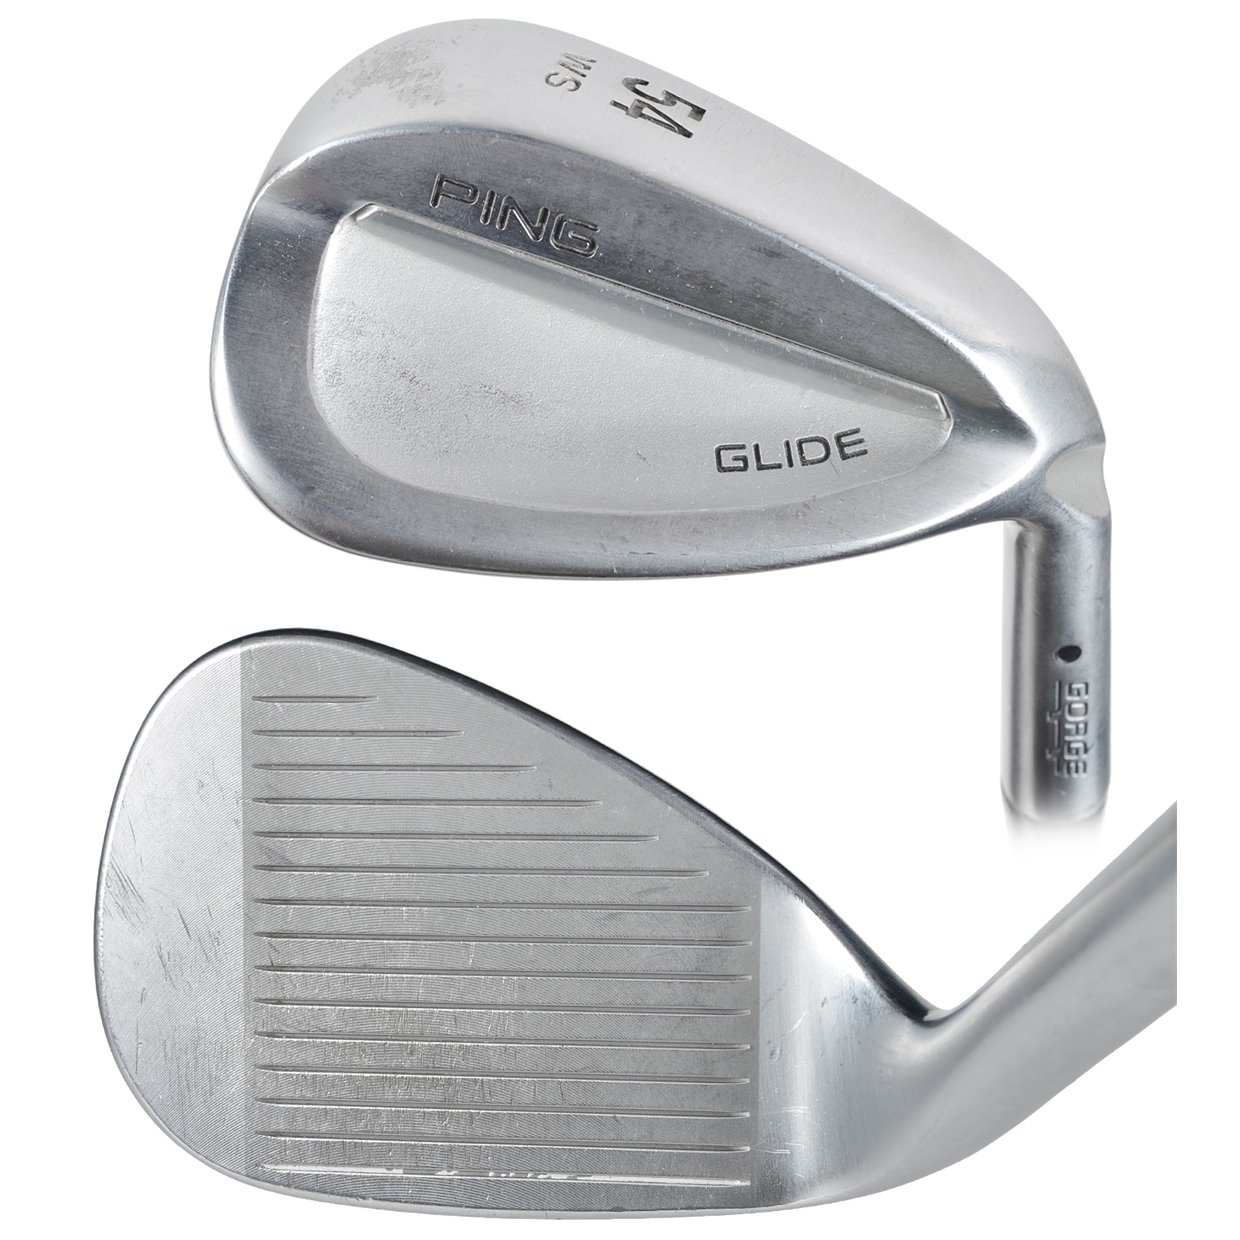 Ping Glide Ws Wedge Sand Wedge 56 Degree Used Golf Club At